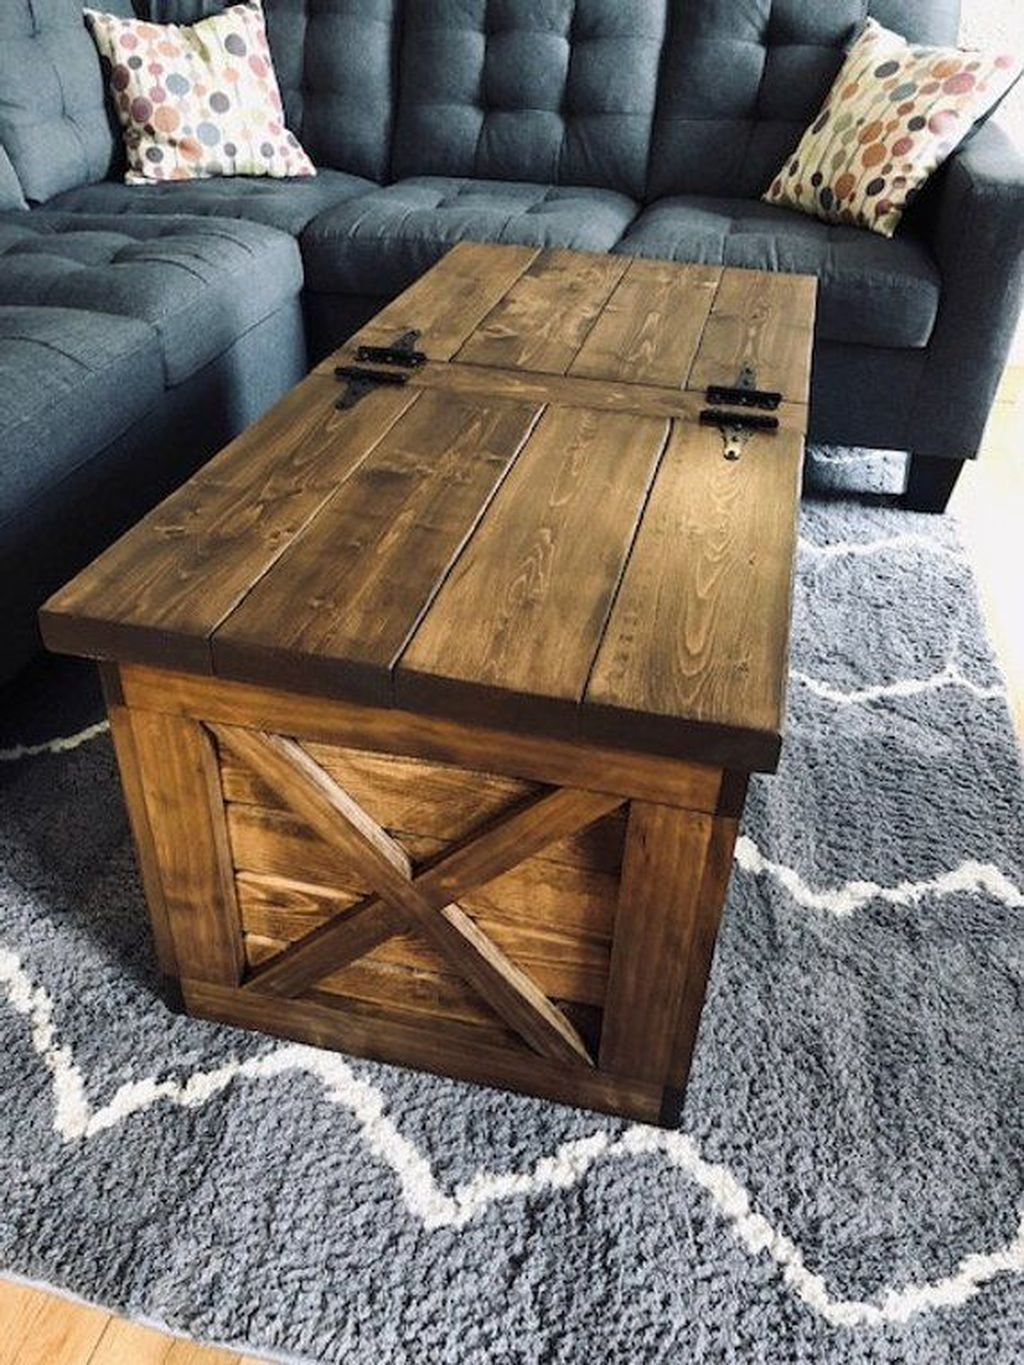 Gorgeous DIY Coffee Table Design Ideas 19